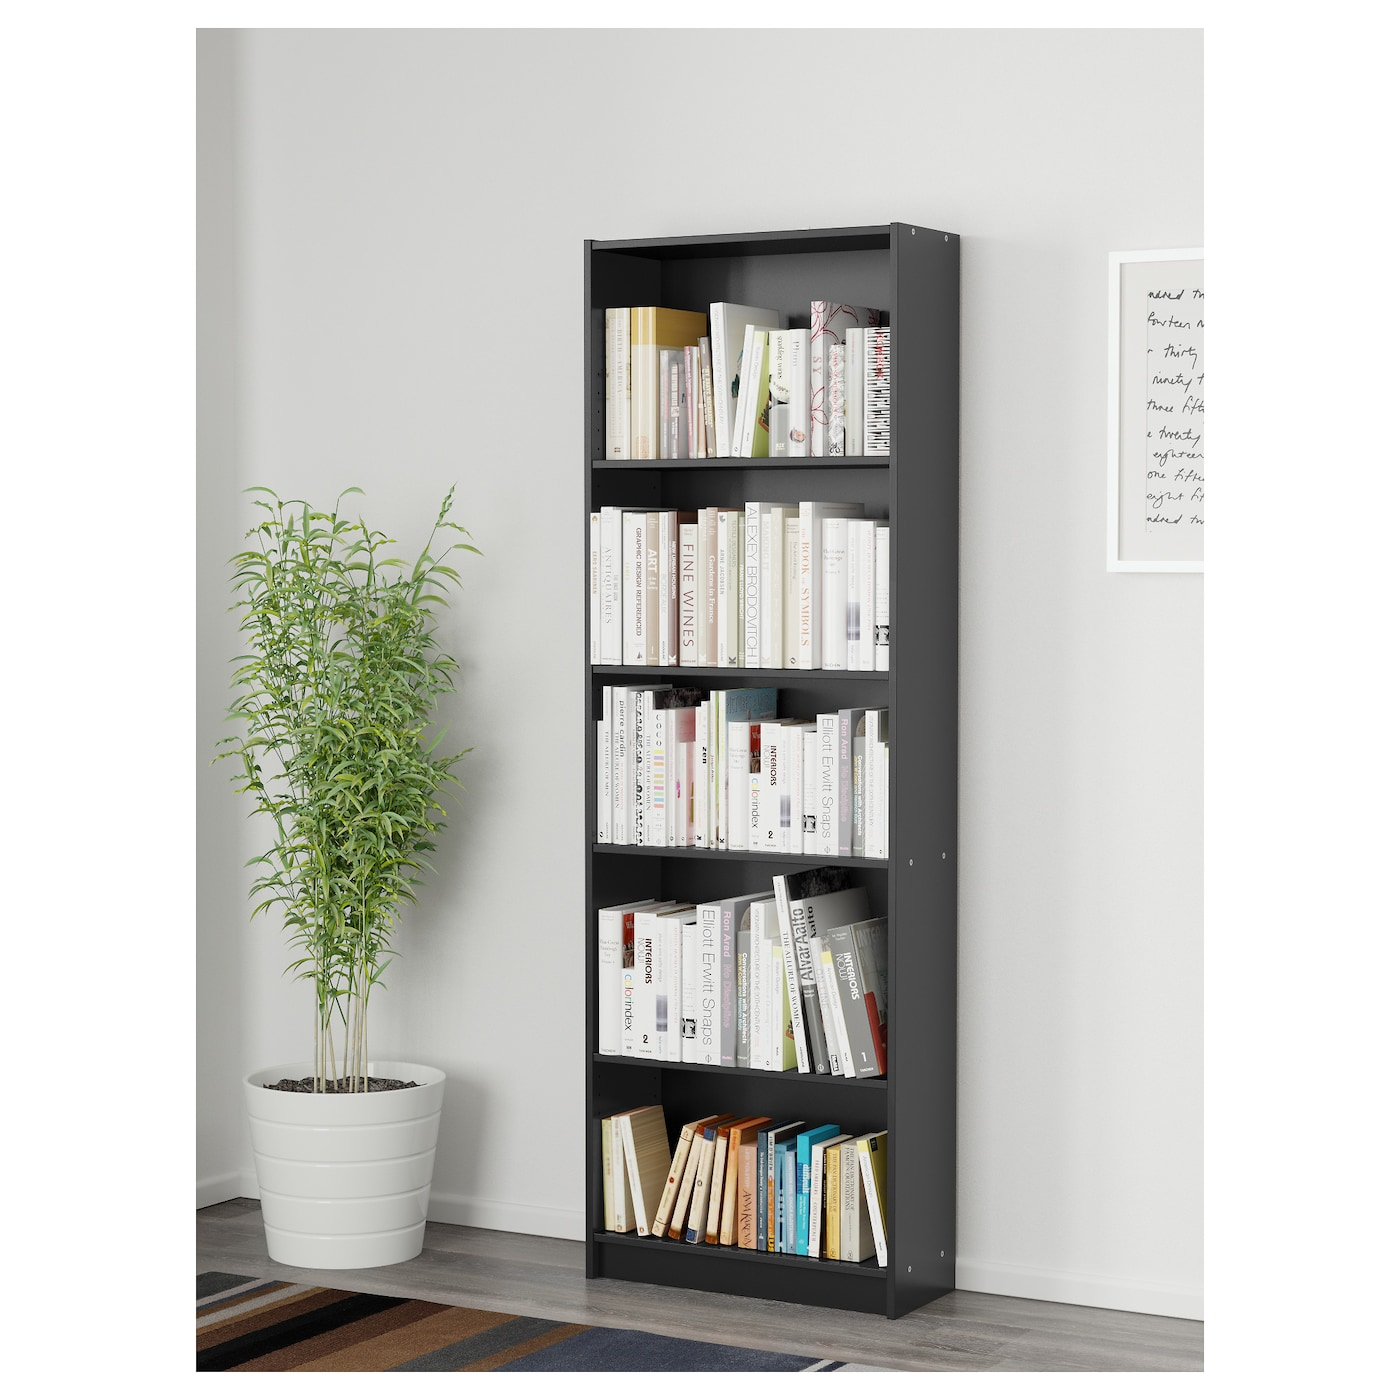 shelf for wall mount less bookshelves spine white shelves book bookcases and pin bookcase